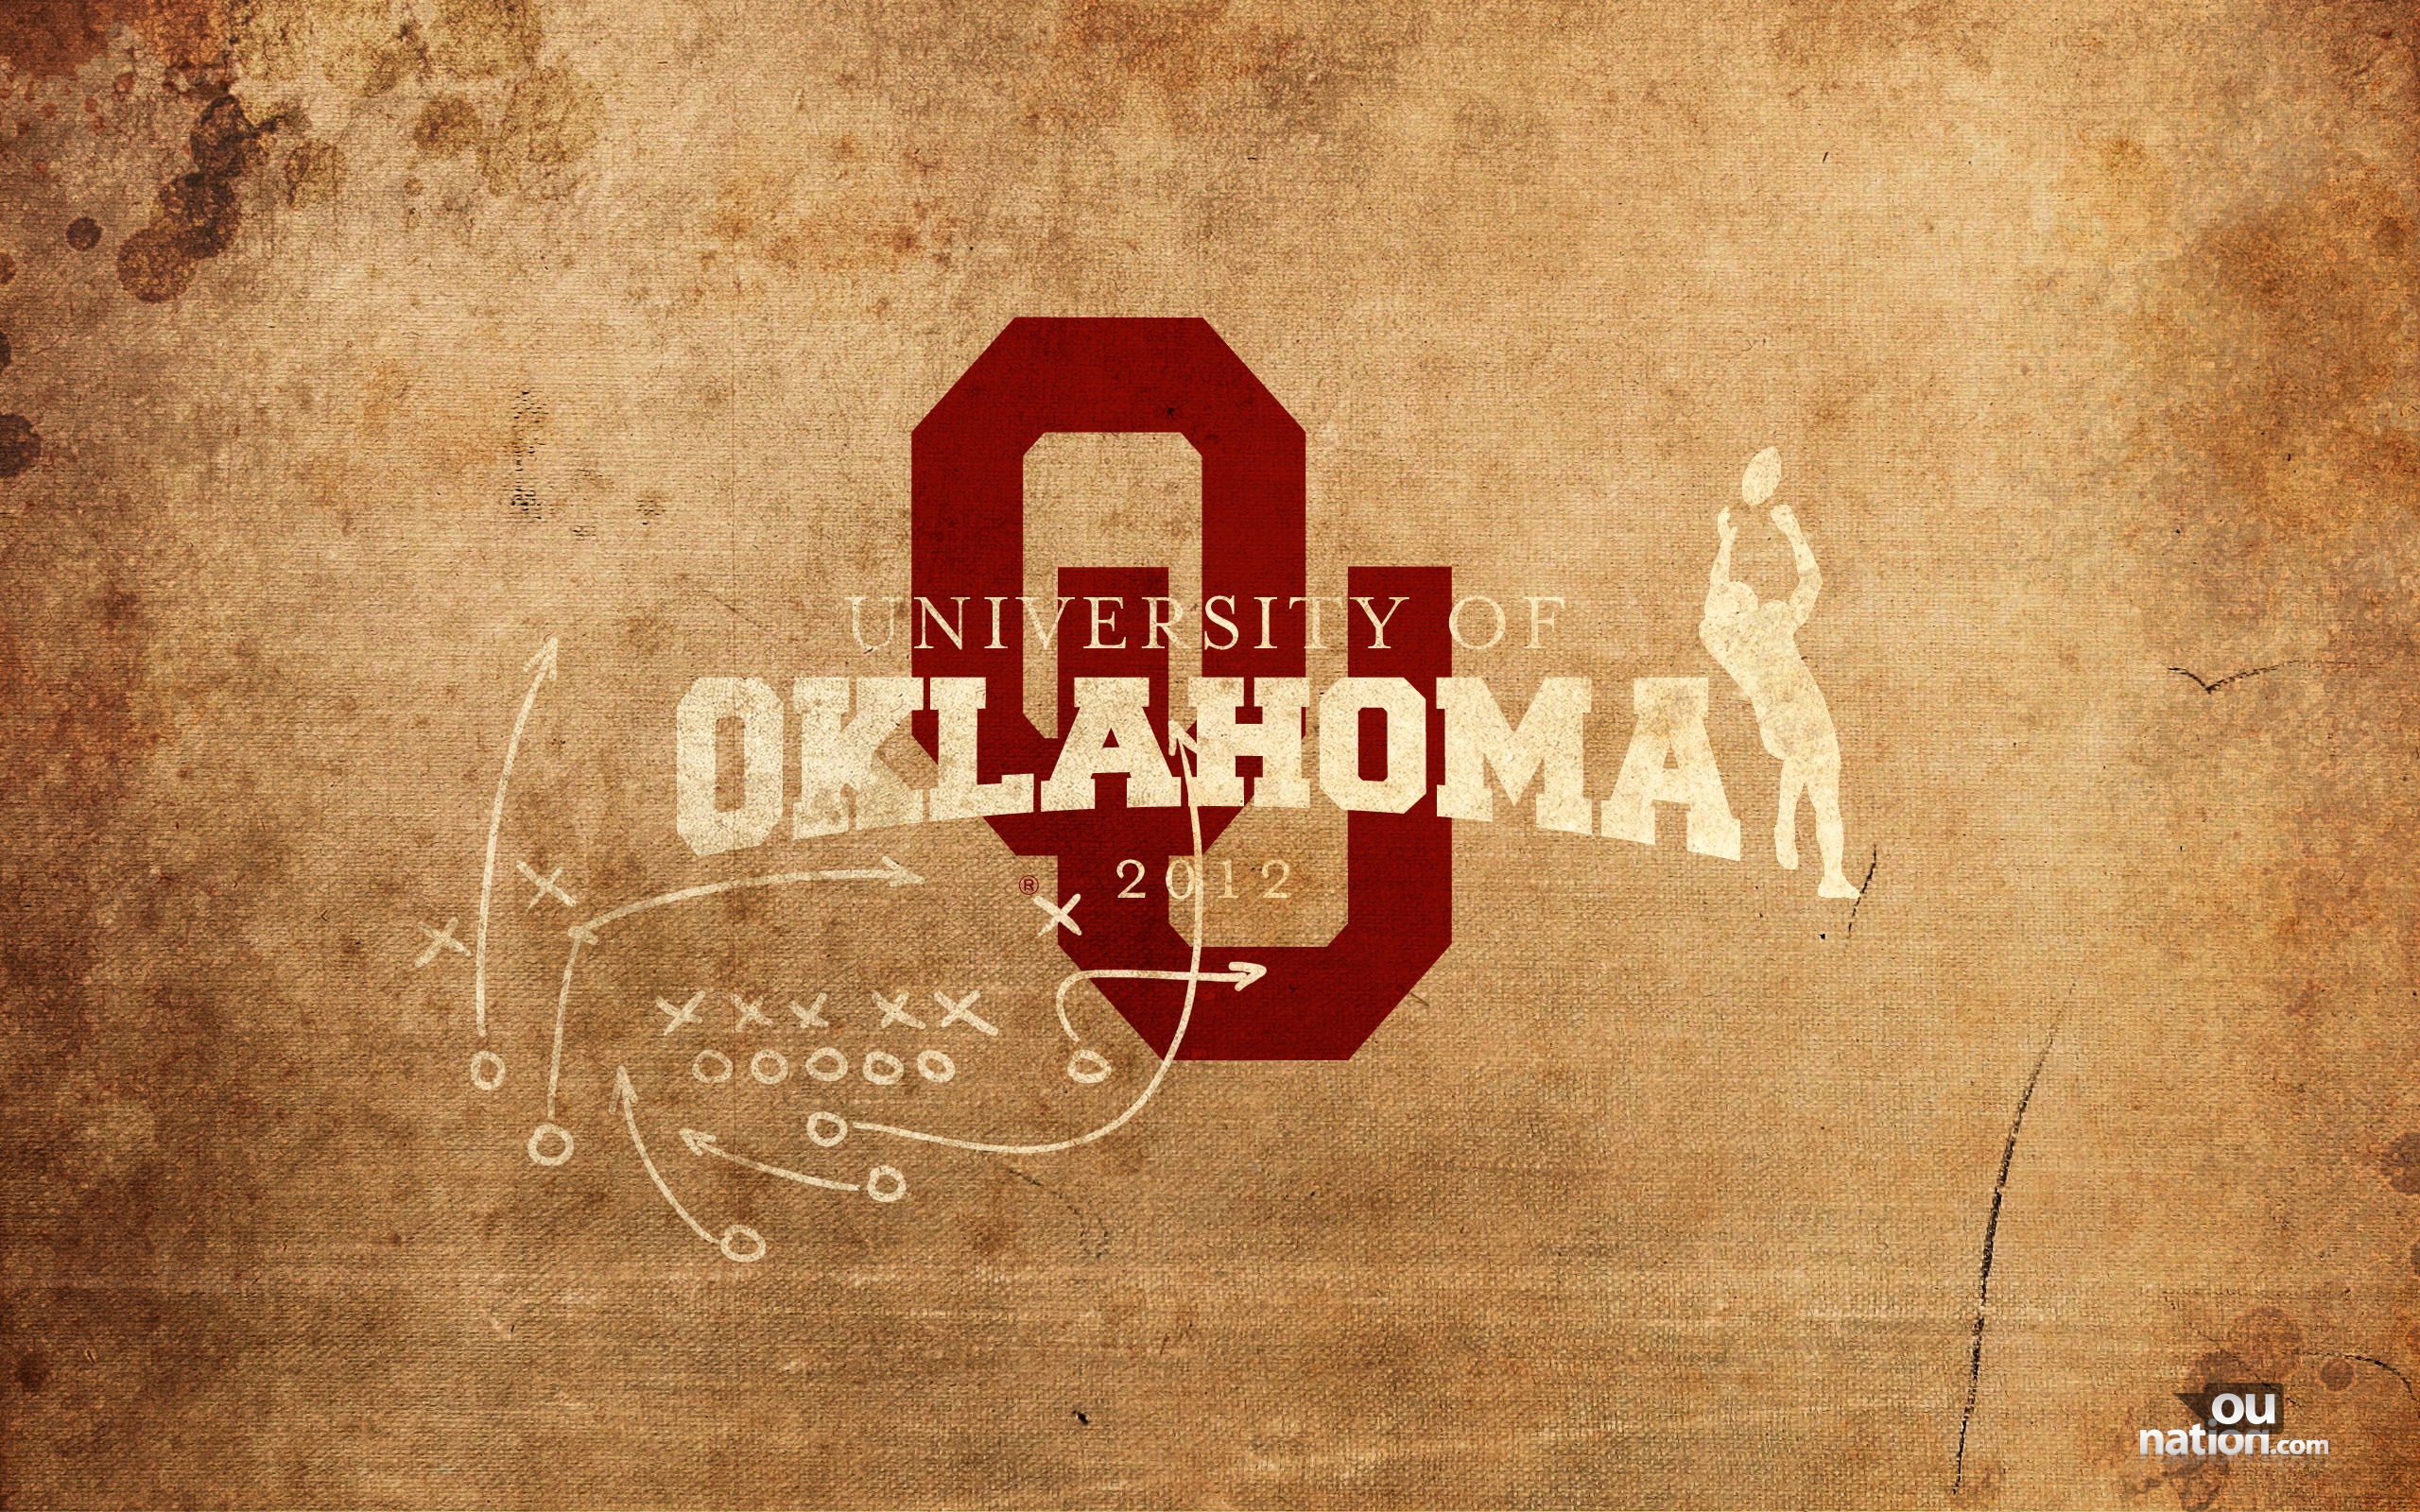 University Of Oklahoma Wallpaper